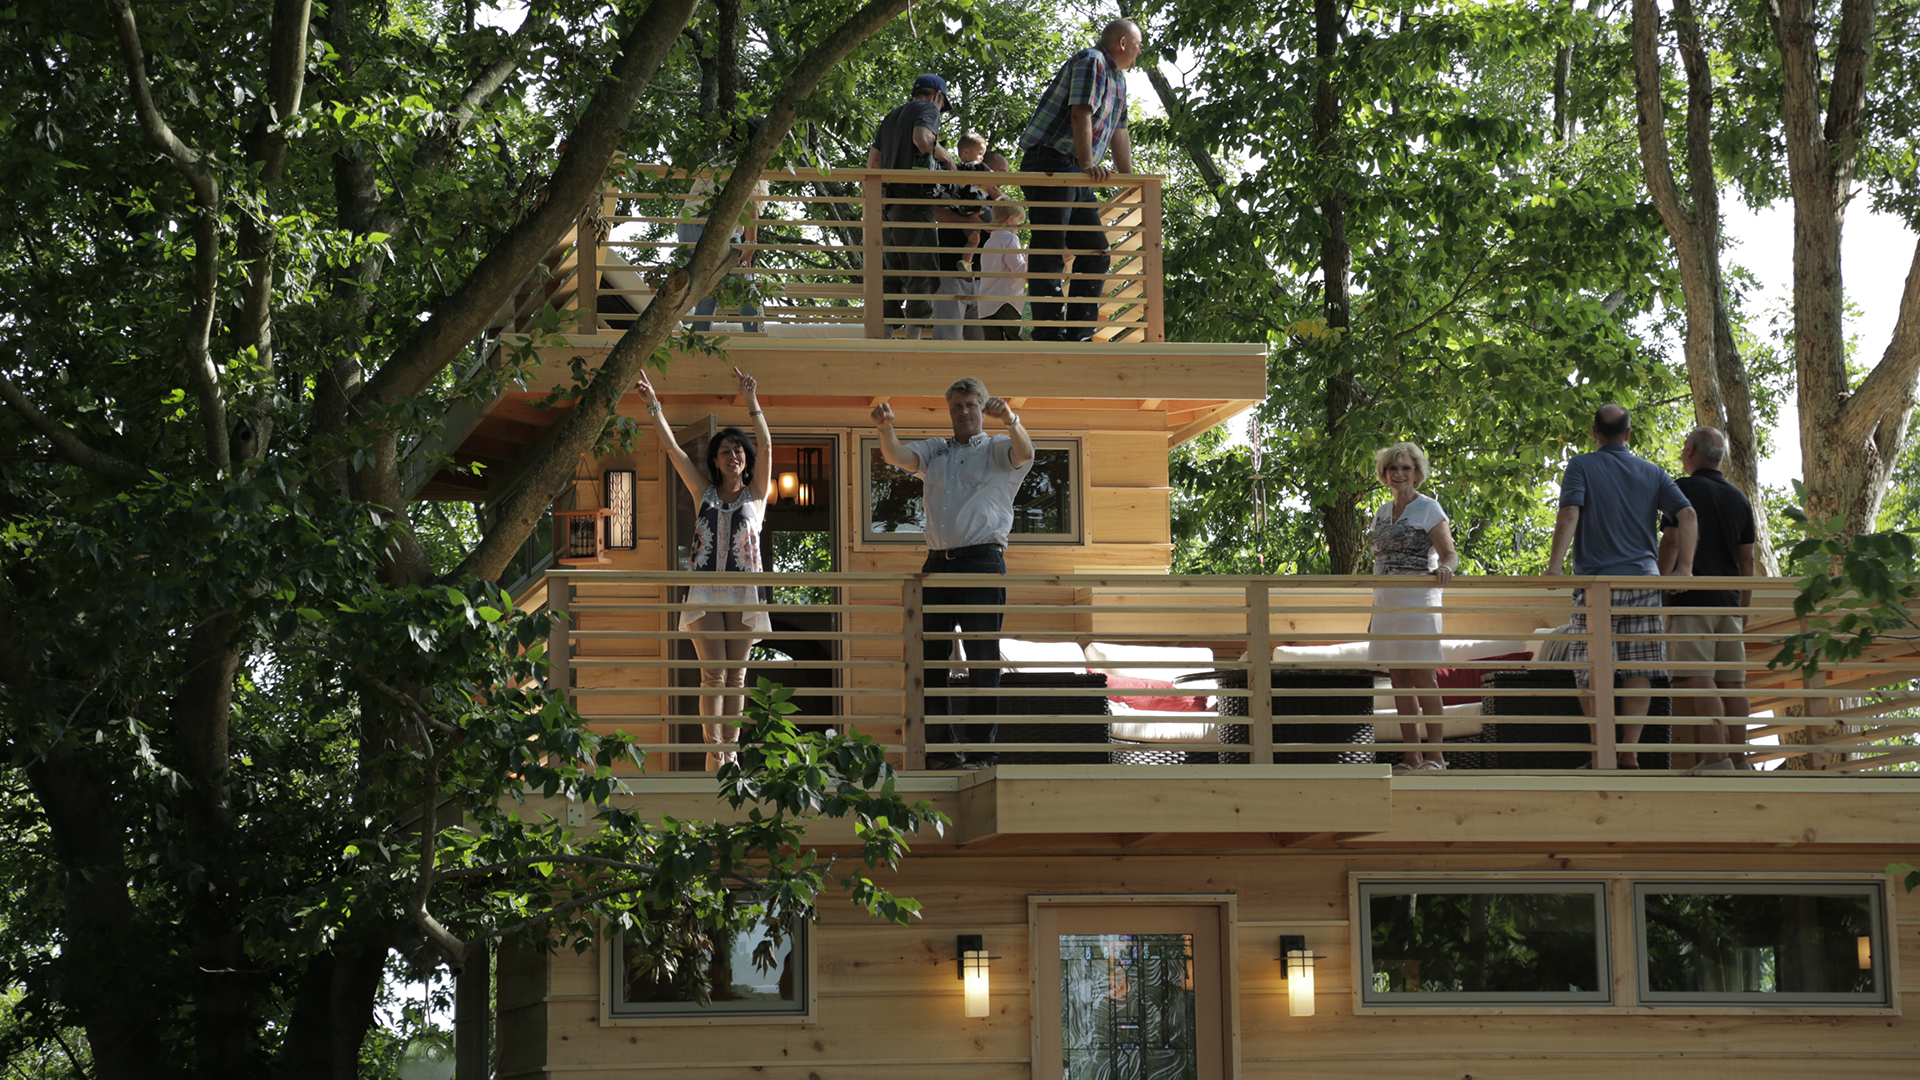 treehouse masters frank lloyd wright inspired treehouse todaycom - Treehouse Masters Inside